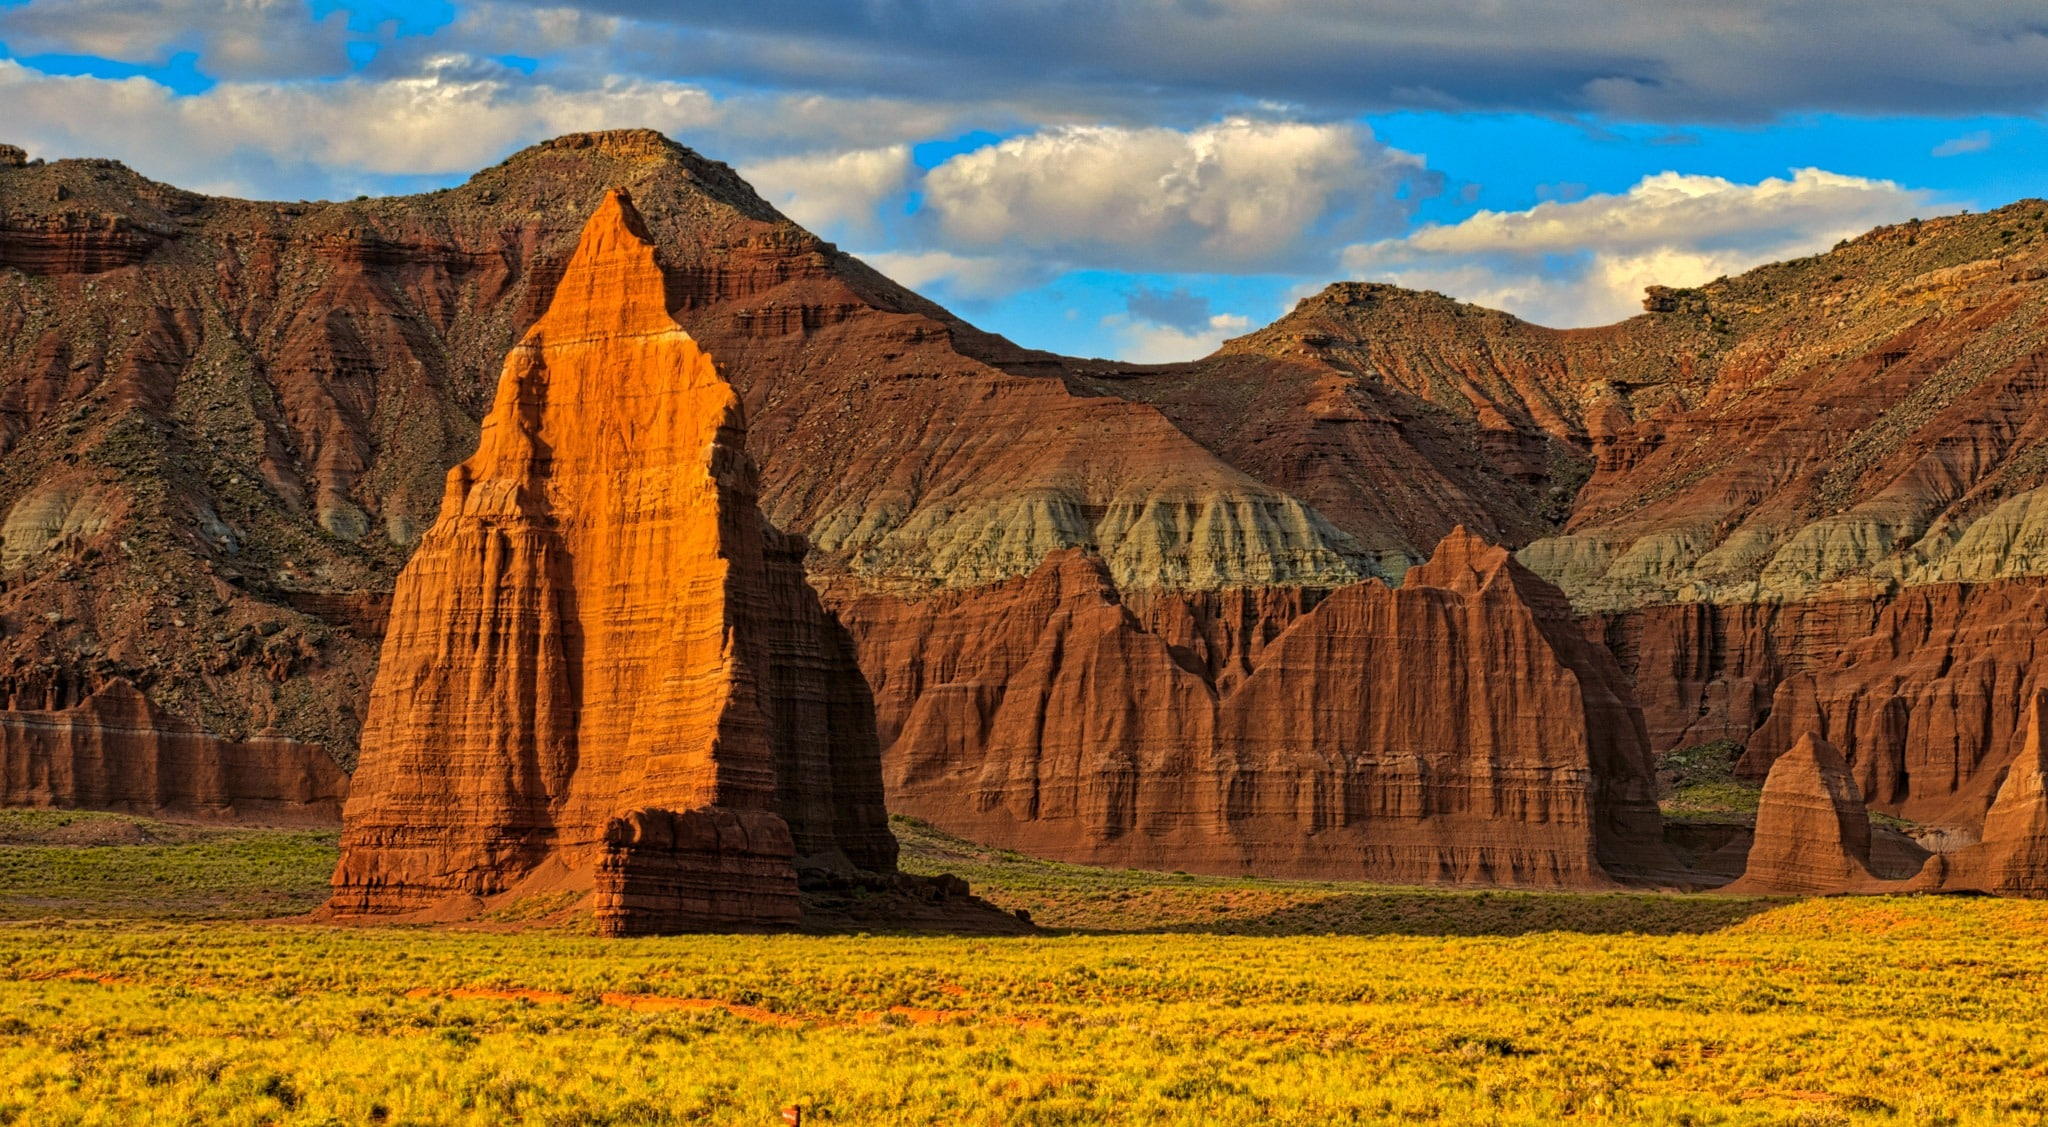 The summer dawn illuminates the face of the Temple of the Sun and the surrounding cliffs in Cathedral Valley, Capitol Reef National Park, Utah.